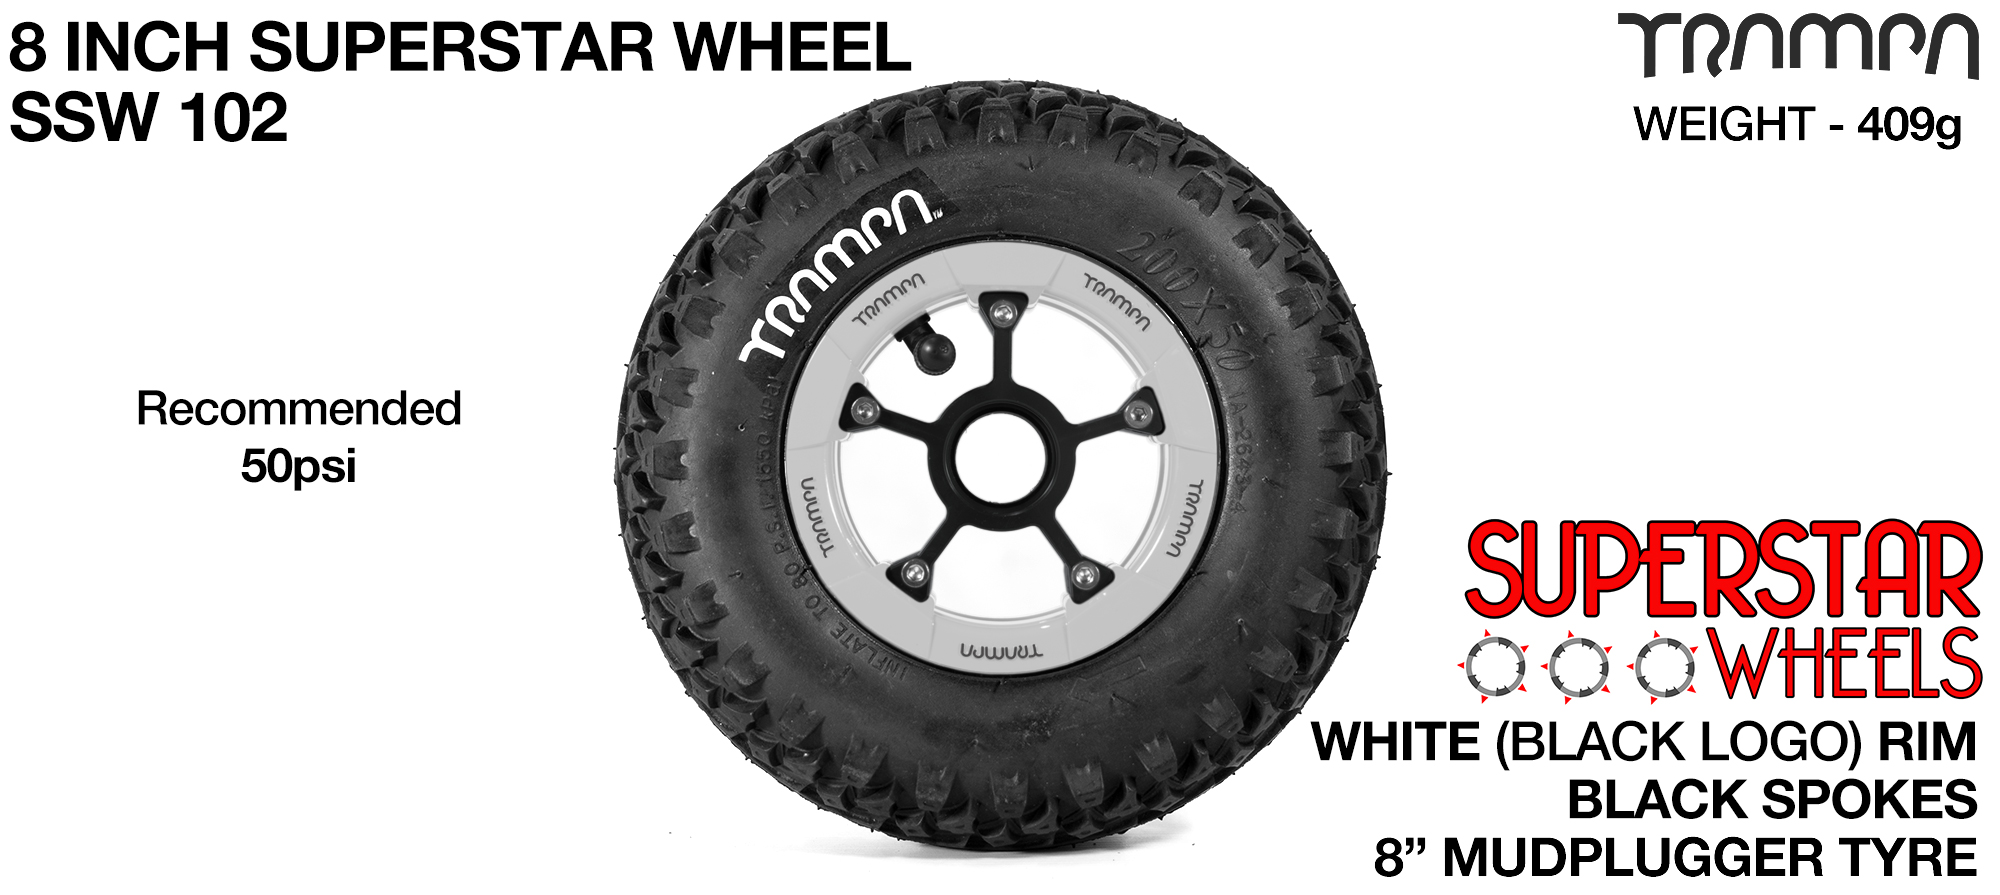 Superstar wheel -  White Rim and Black logos with Black Anodised Spokes and Trampa Deep Tyre - 8 inch wheel